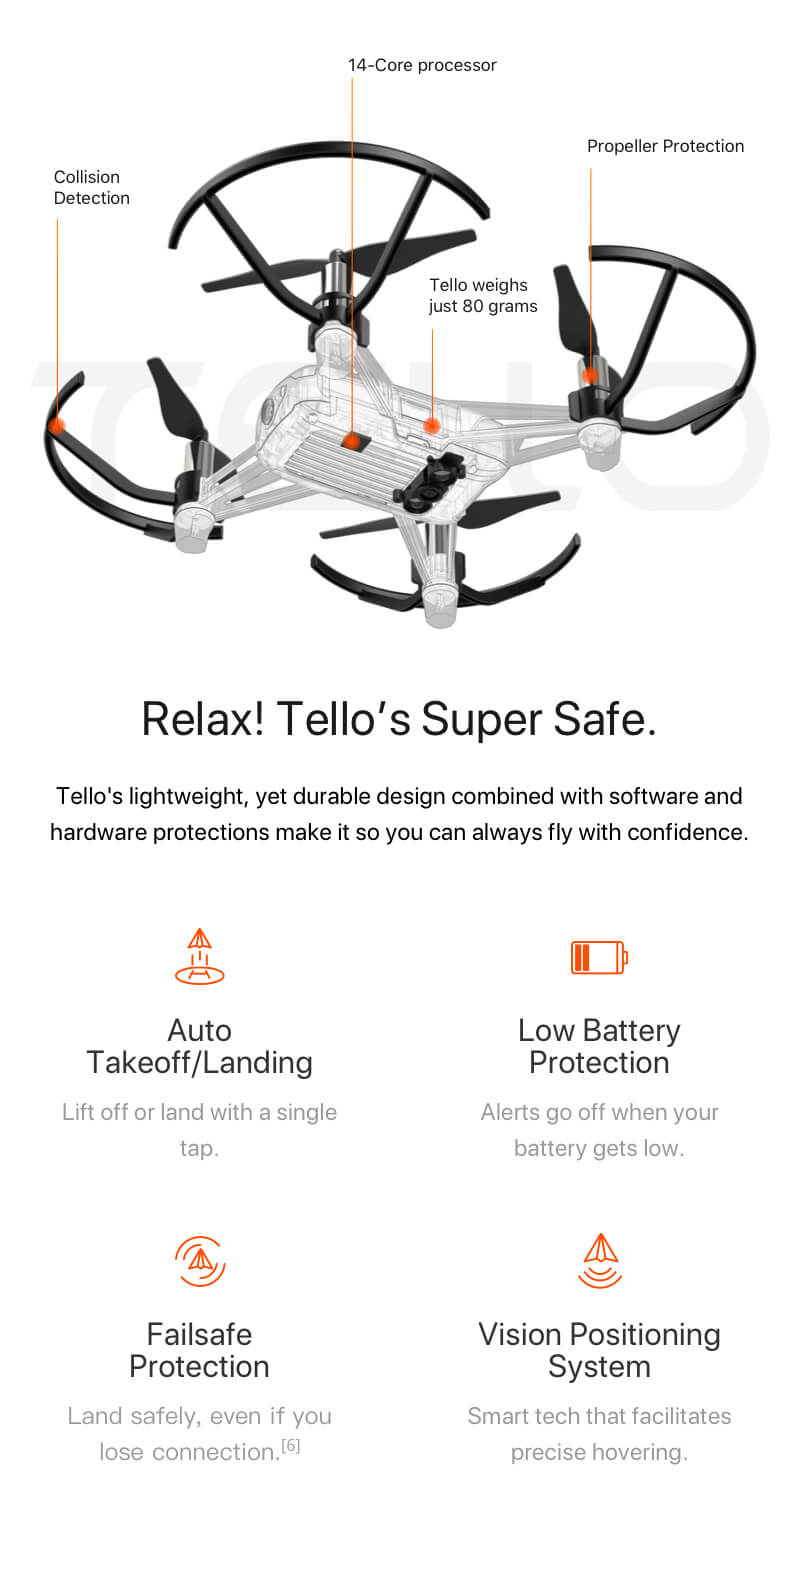 The Super Safe Tello Drone